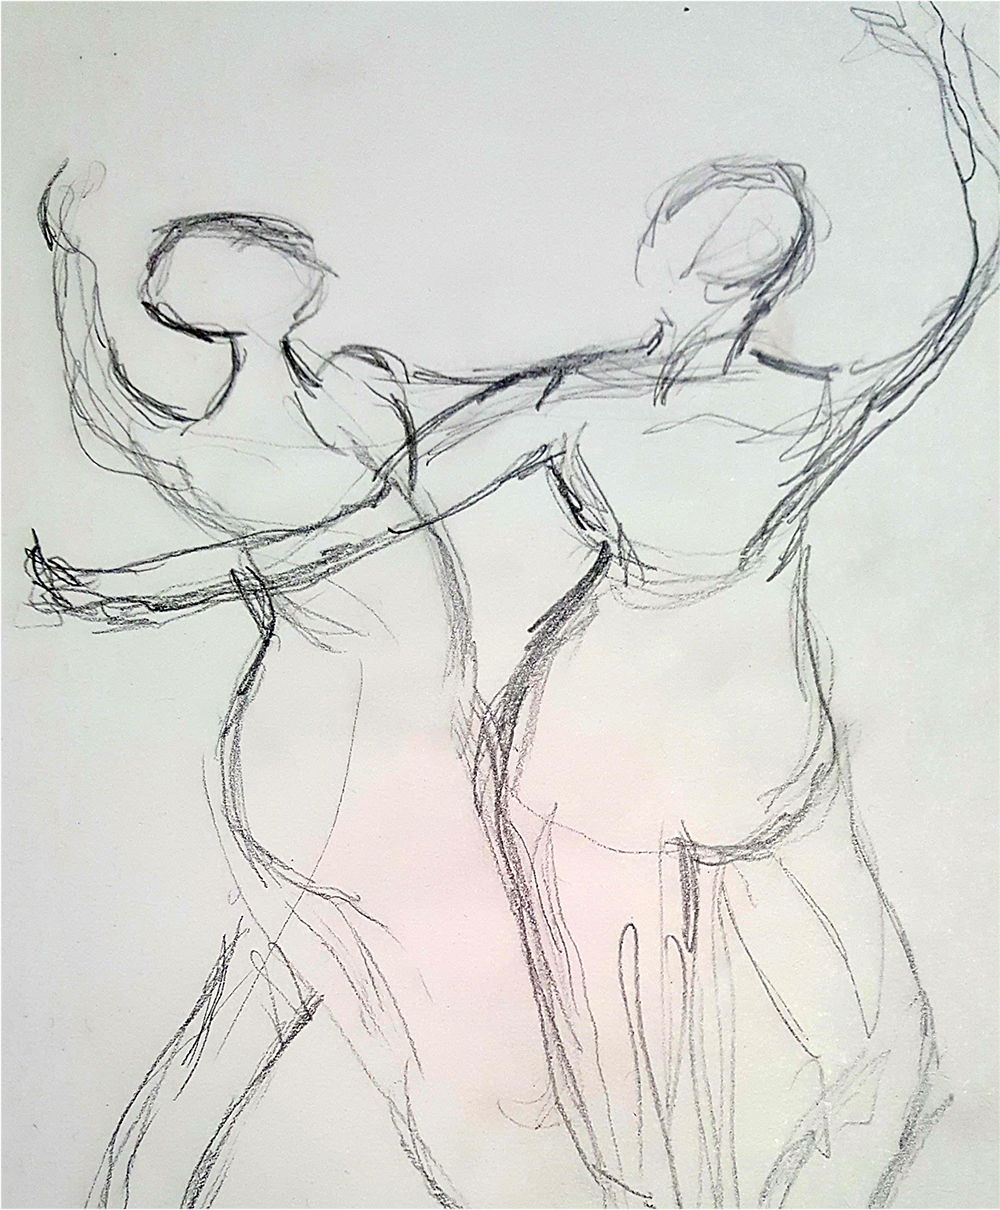 Line drawing by workshop participant of Sculpture by Degas